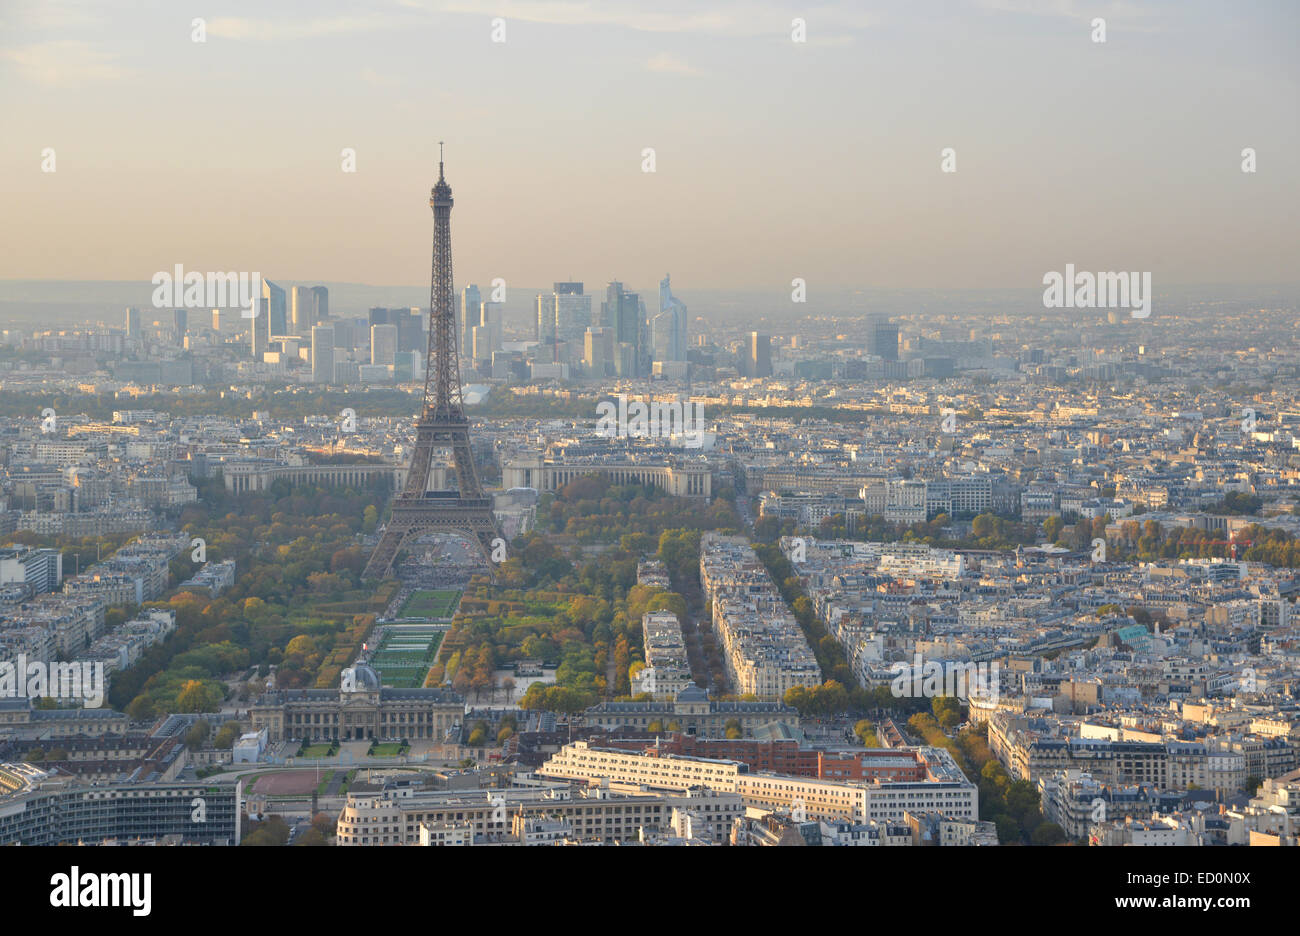 The Eiffel Tower and Paris city center at dusk, seen from the Montparnasse Tower - Stock Image